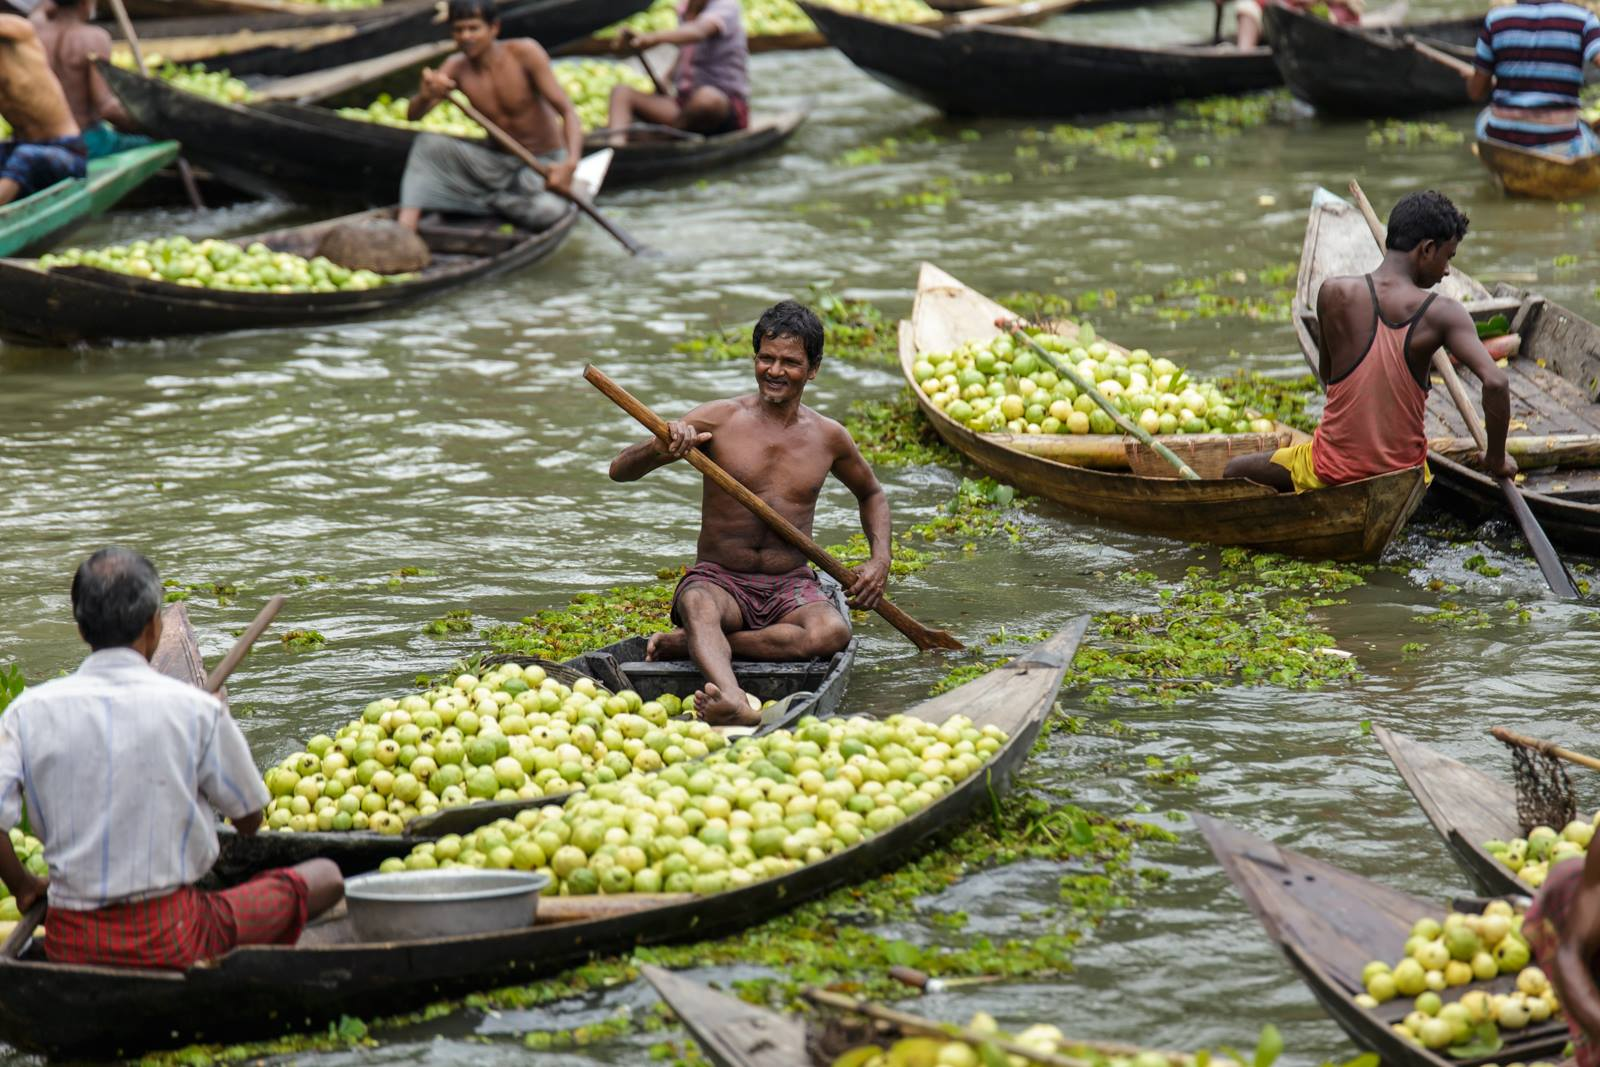 A Visual Journey Into the Floating Guava Markets of